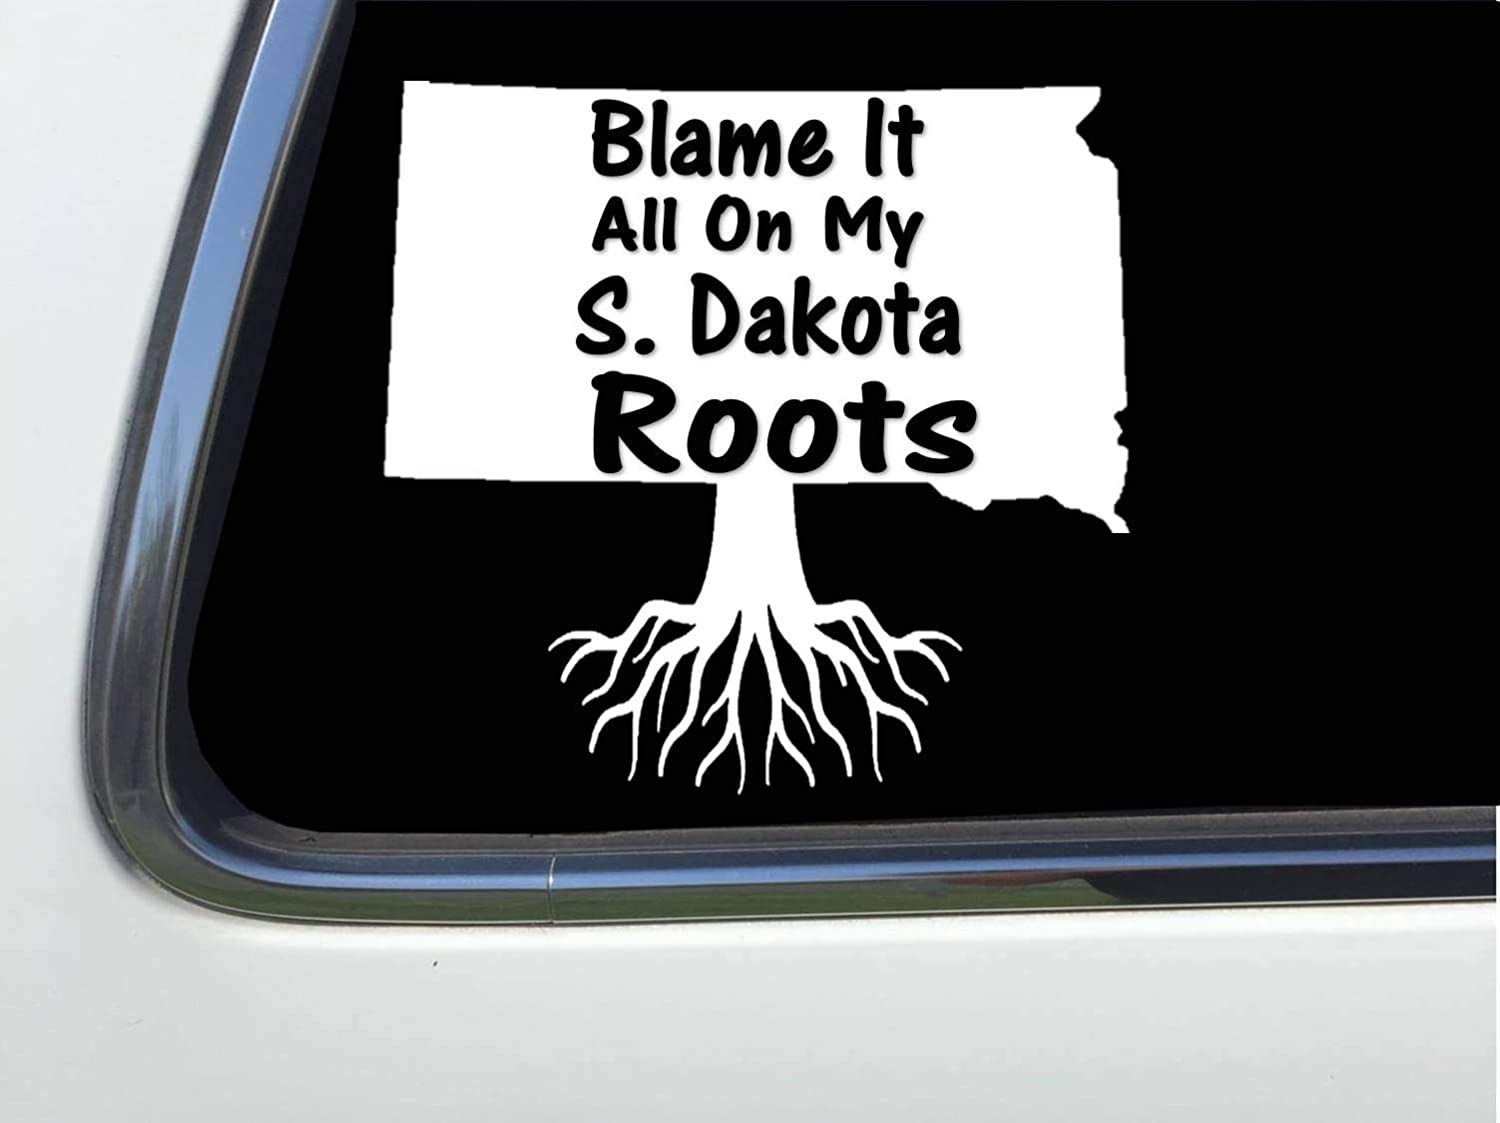 Blame It All On My Wyoming Roots 6 Sticker Decal HM1703 Thatlilcabin